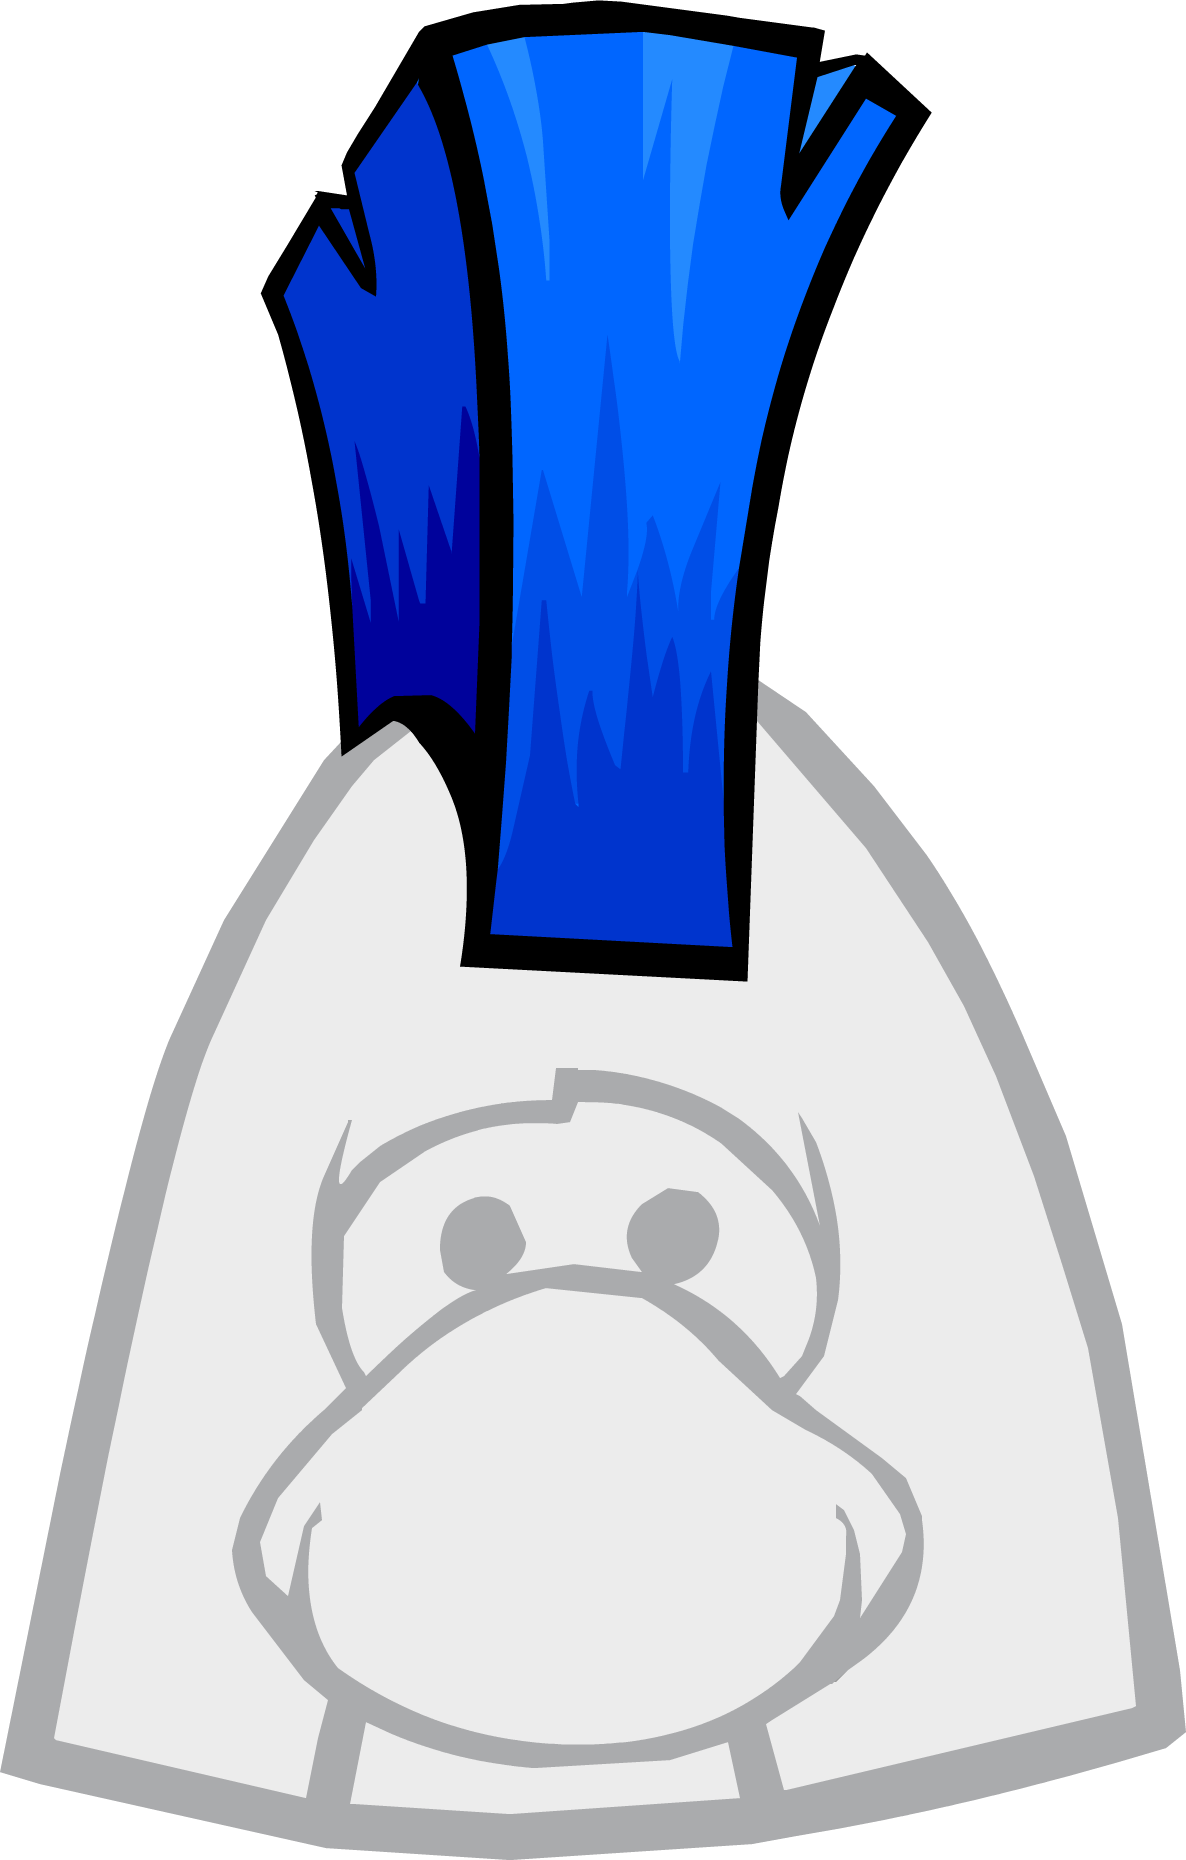 The Spikester